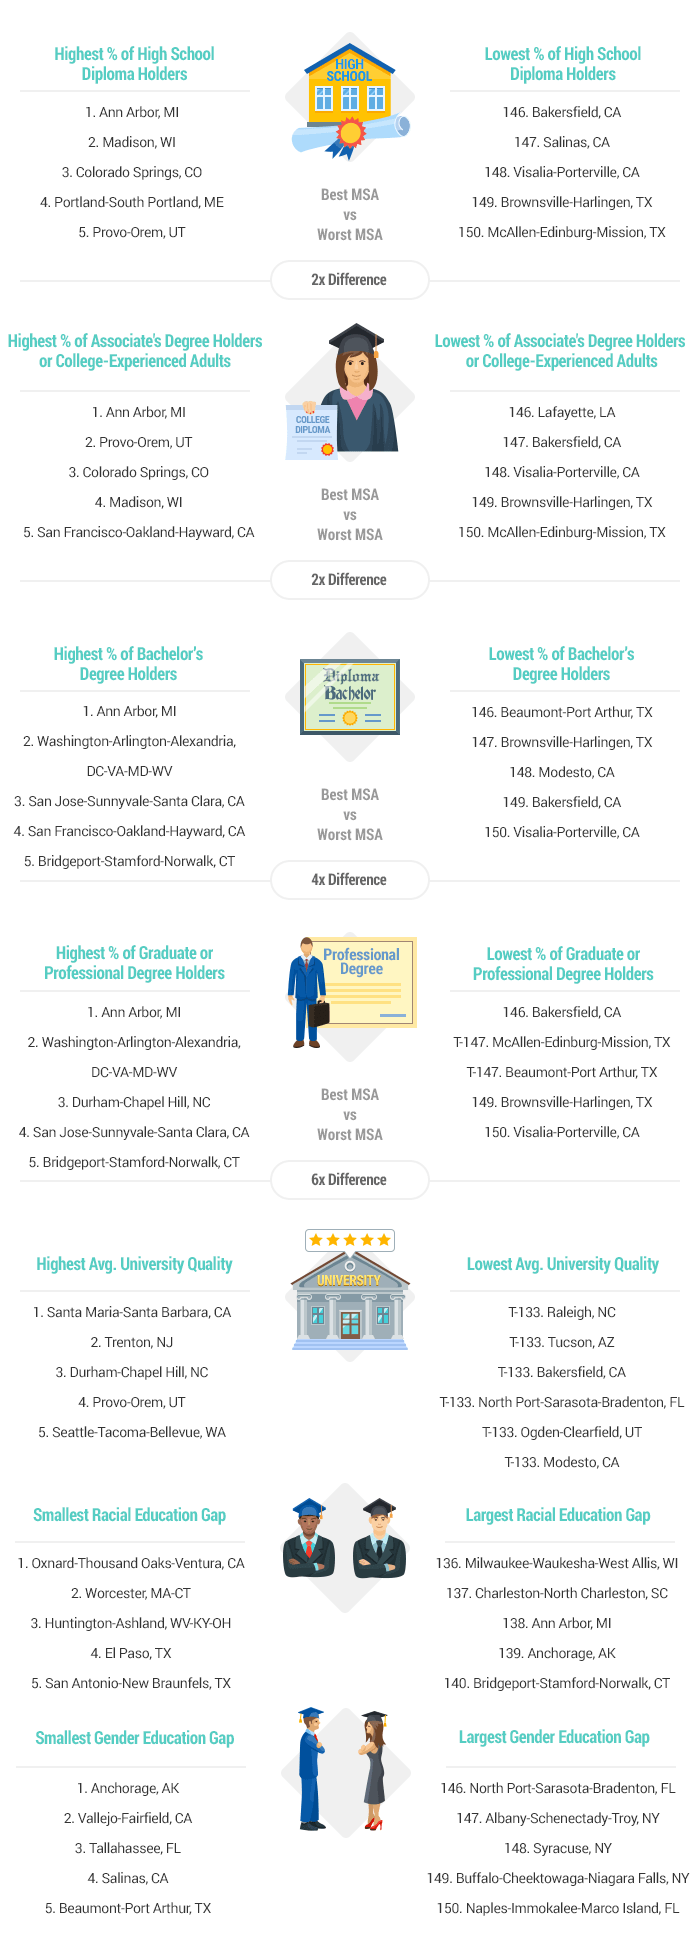 2018's Most & least educated cities in America artwork-2018-most-educated-cities-v1